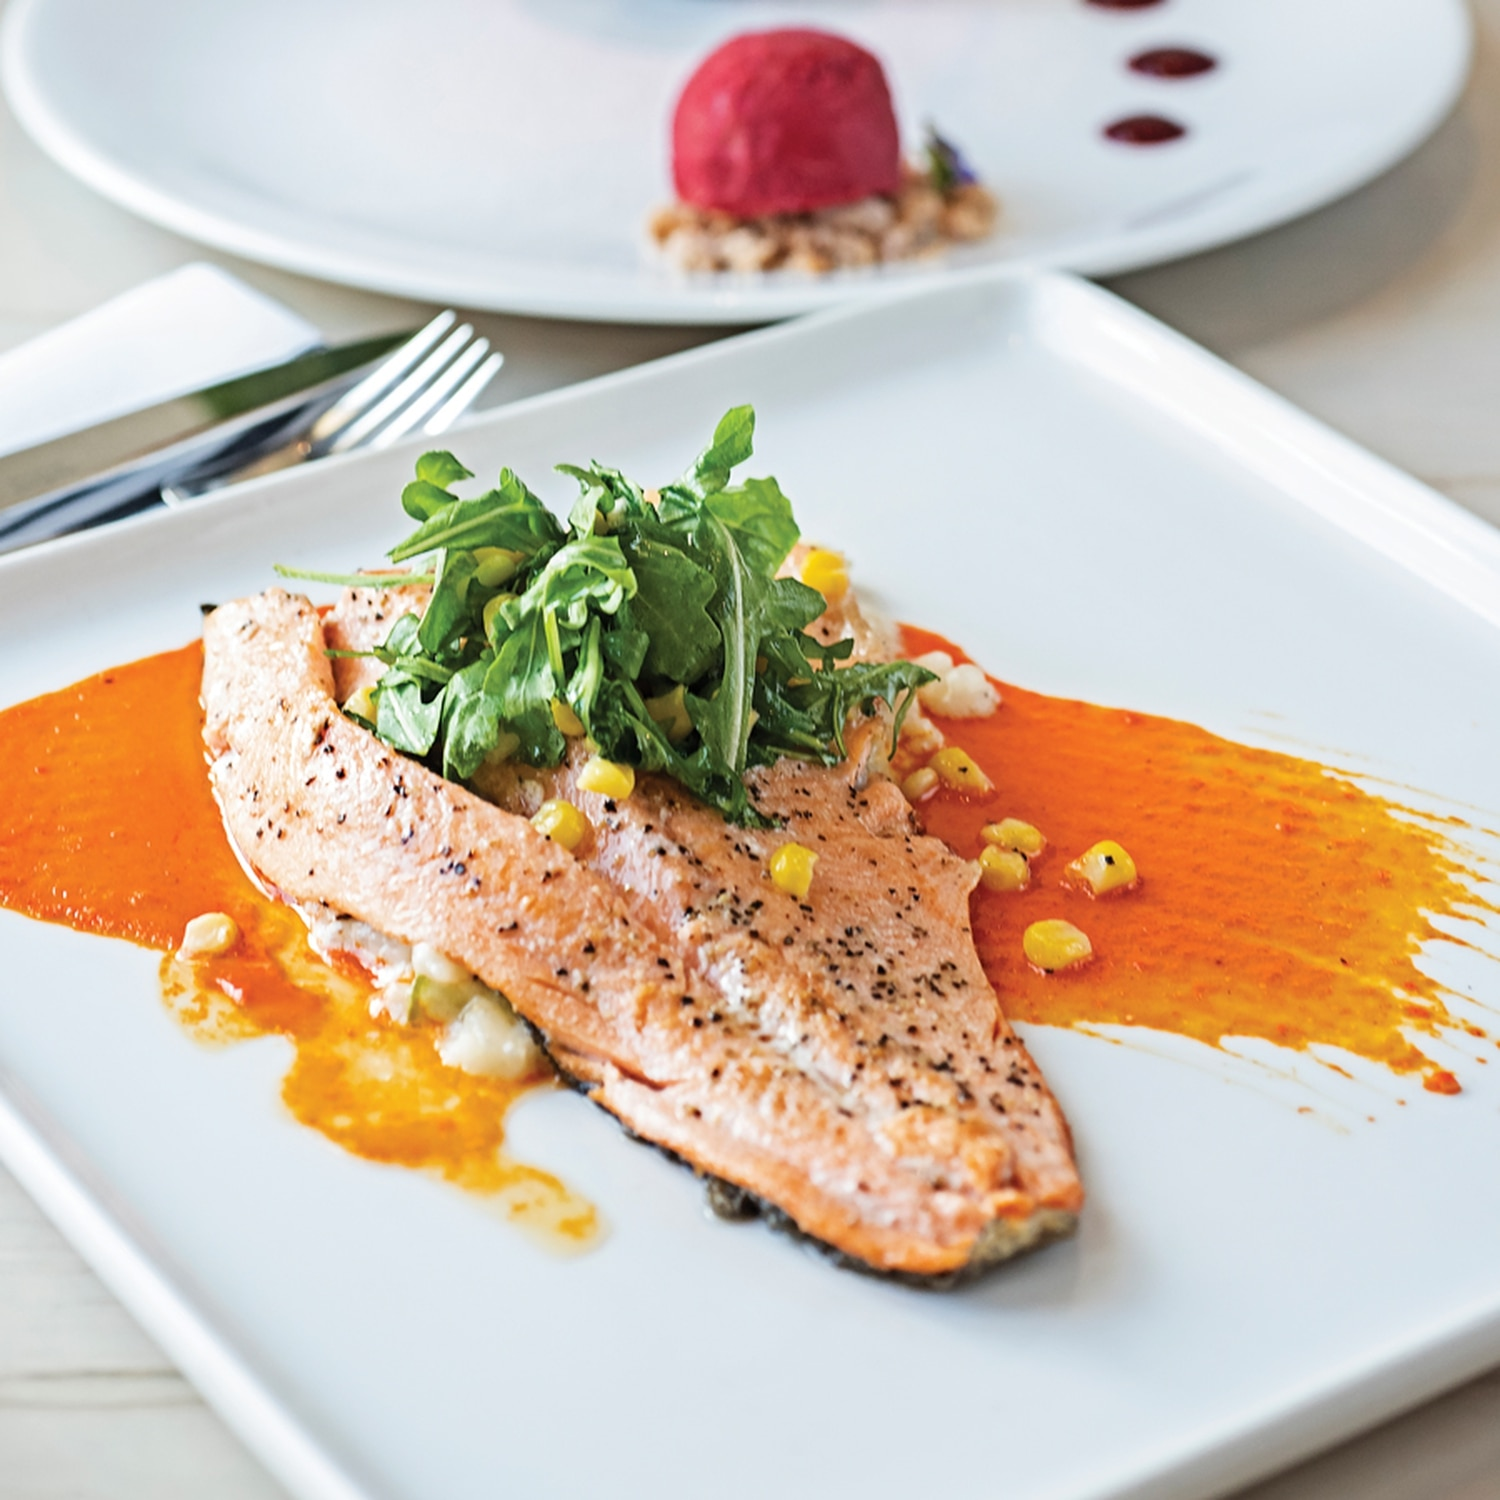 Ruby red trout with pan fried trout, Peruvian pepper sauce, calabacita risotto and arugula